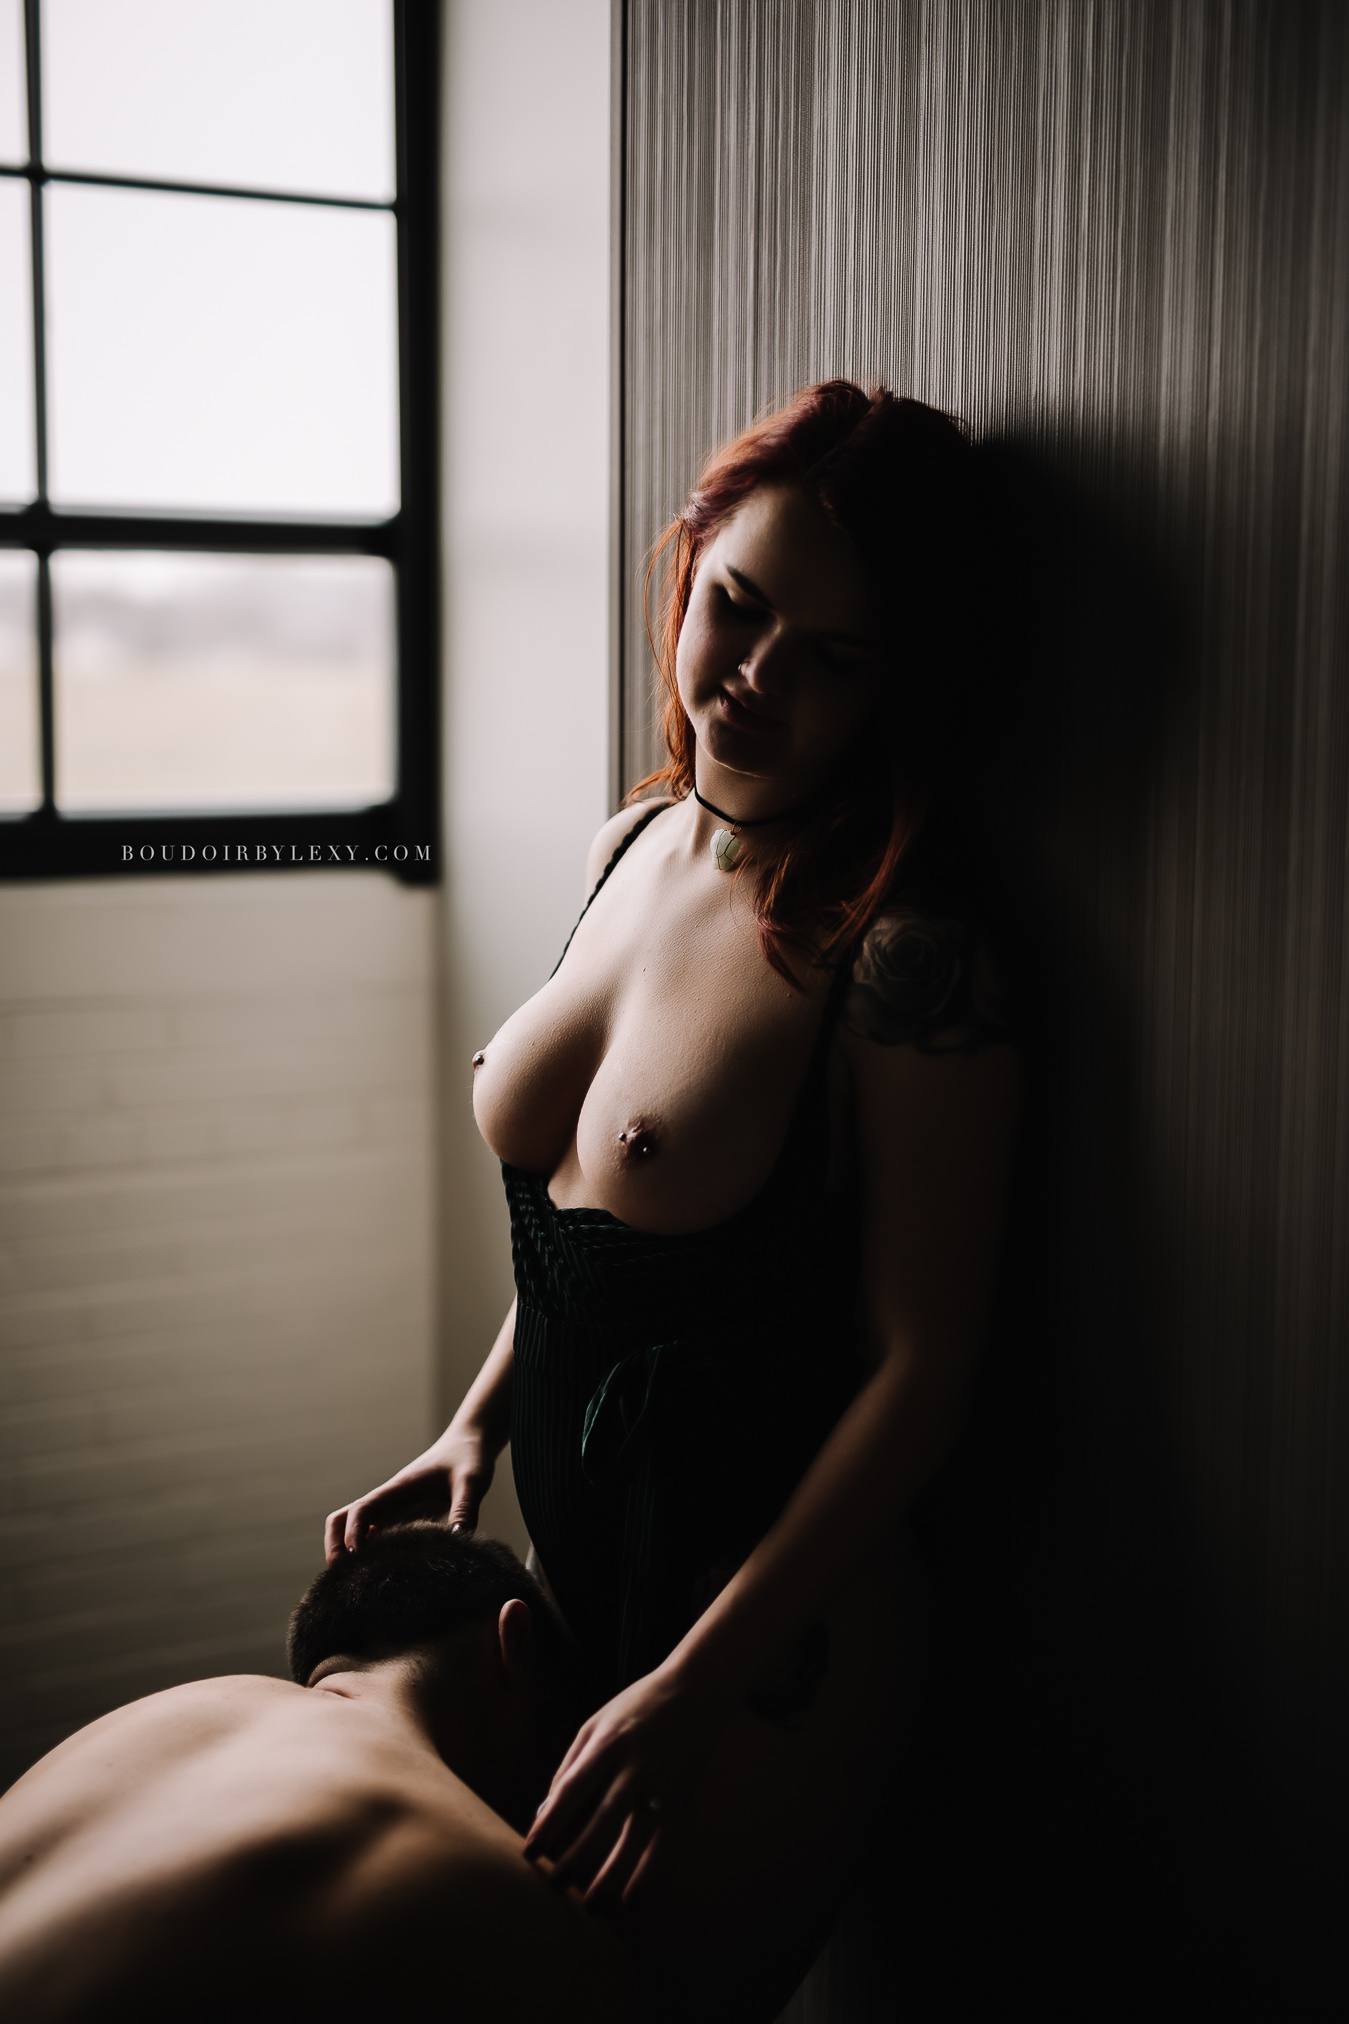 COUPLES SESSION BOUDOIR BY LEXY CEDAR FALLS IOWA-34356.jpg